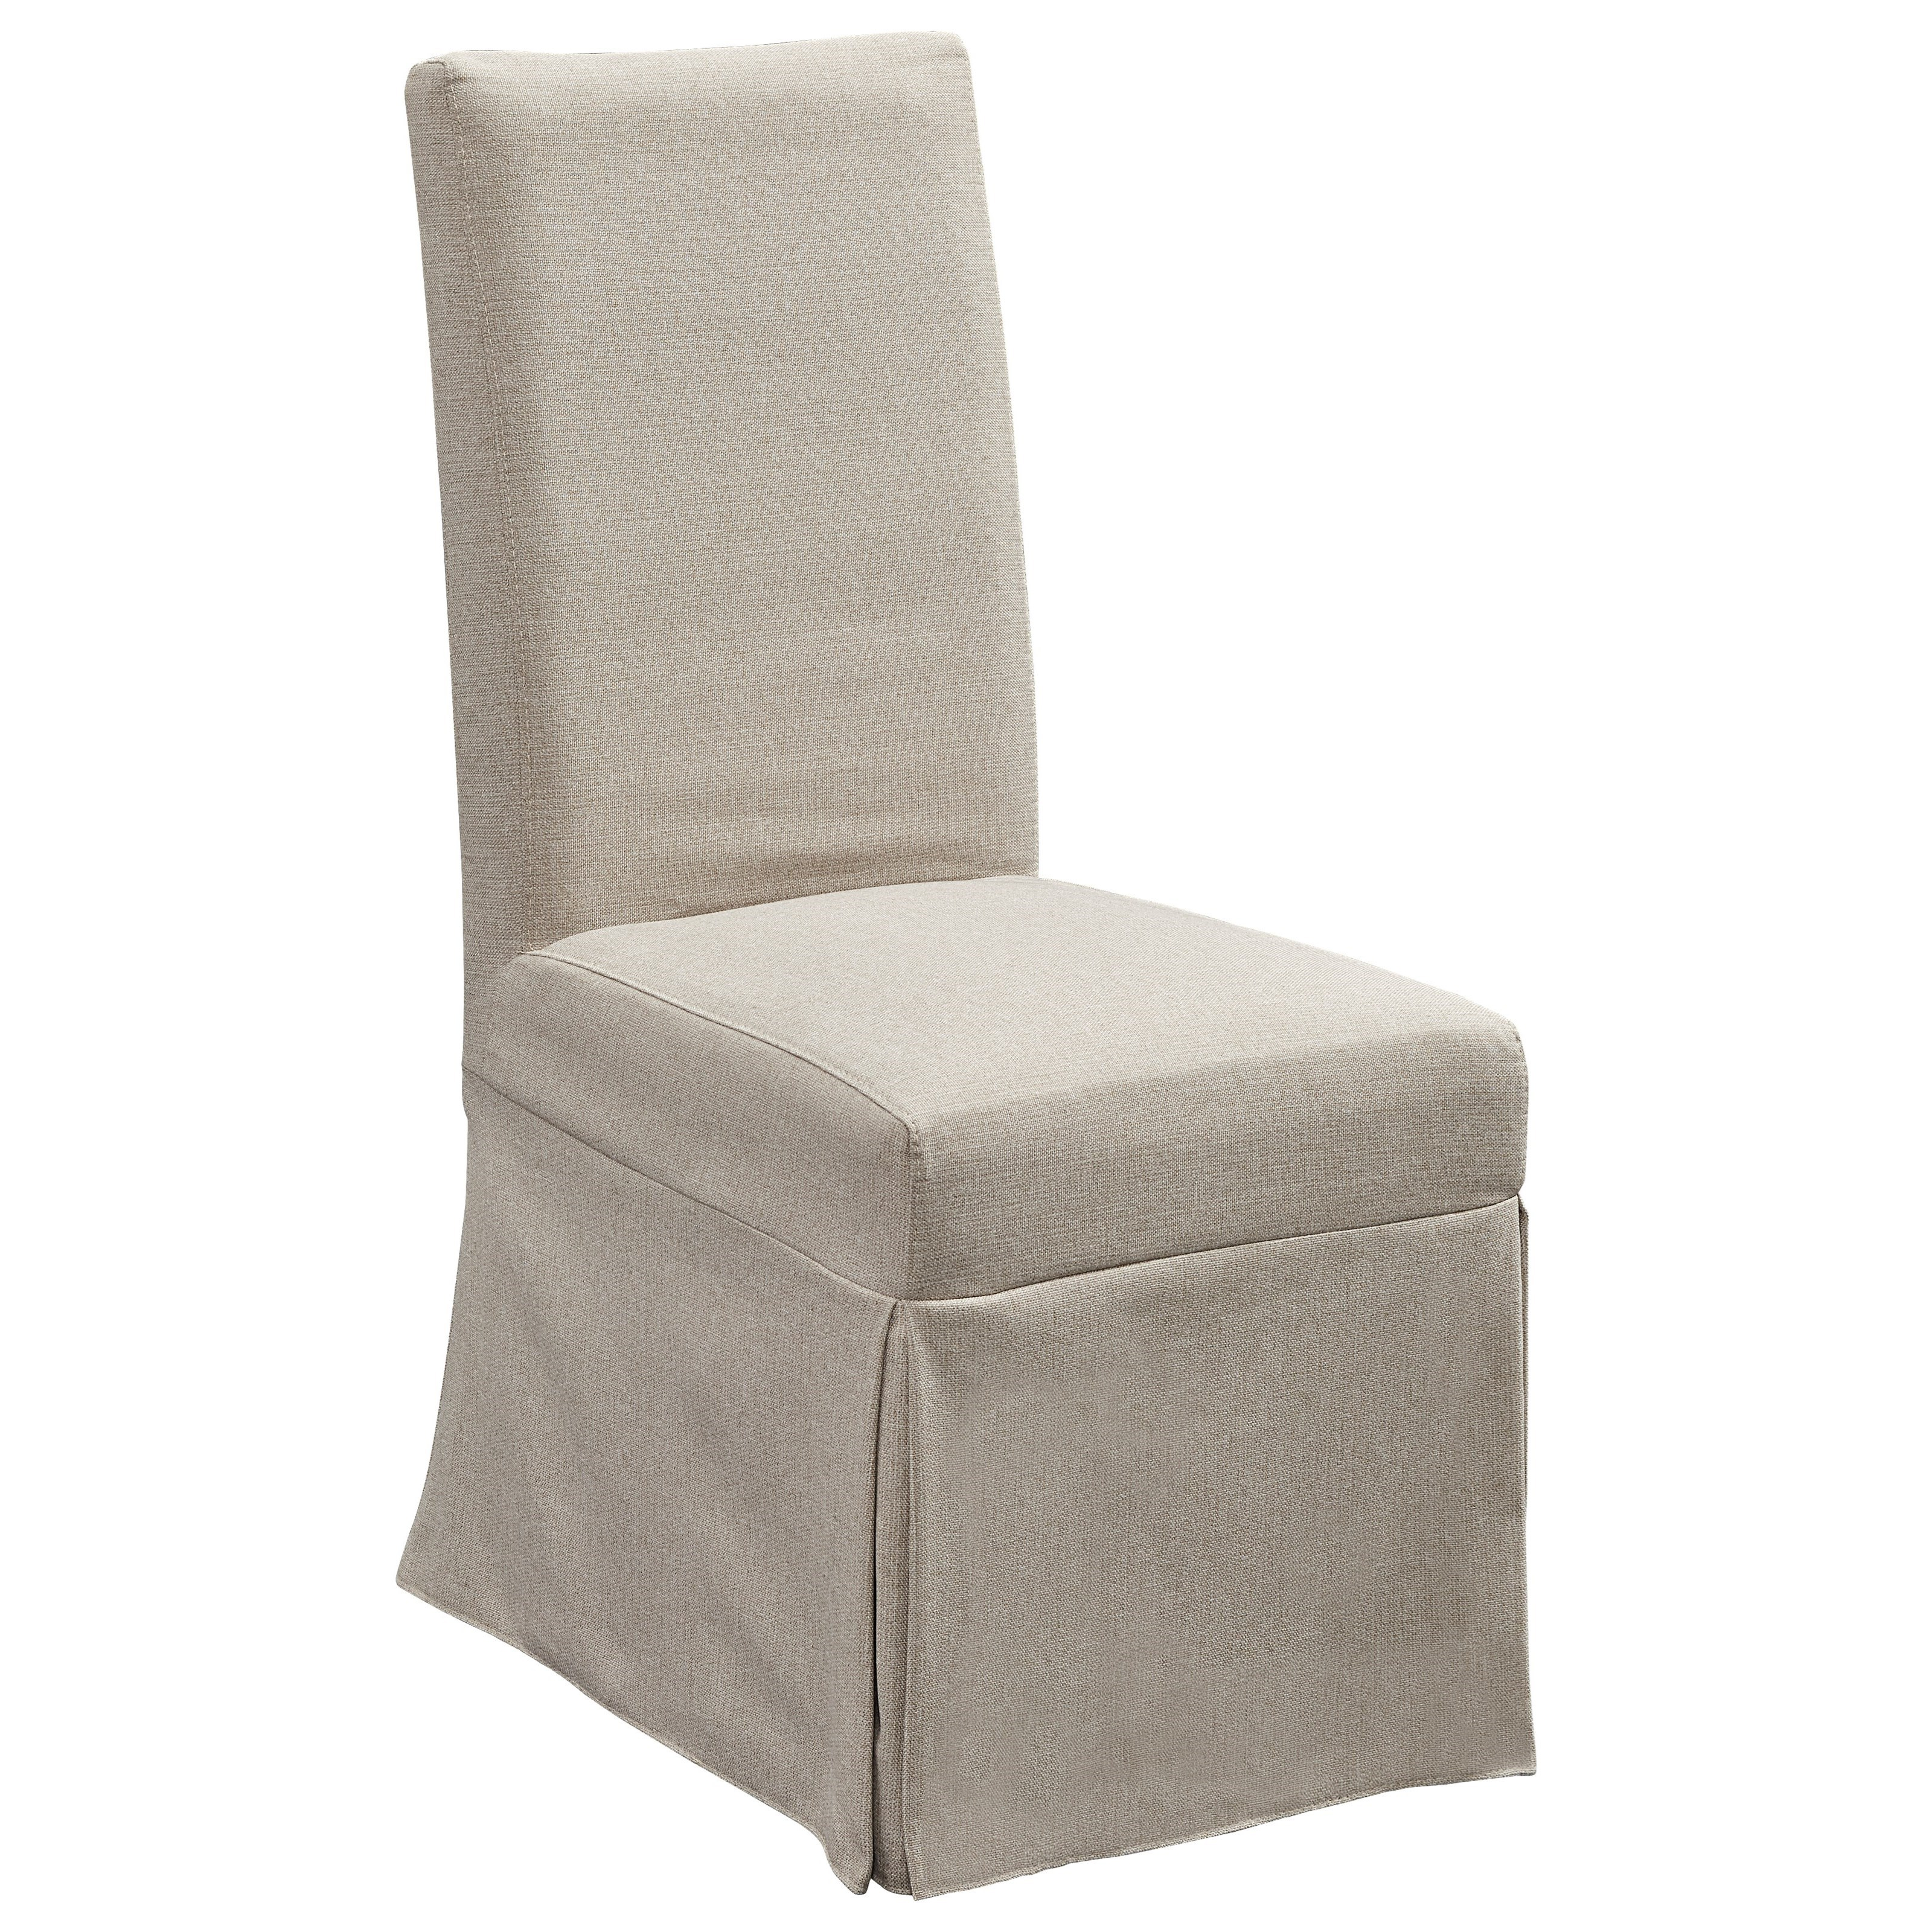 Progressive Furniture Muses Upholstered Parsons Chair w/ Cover - Item Number: P836-60